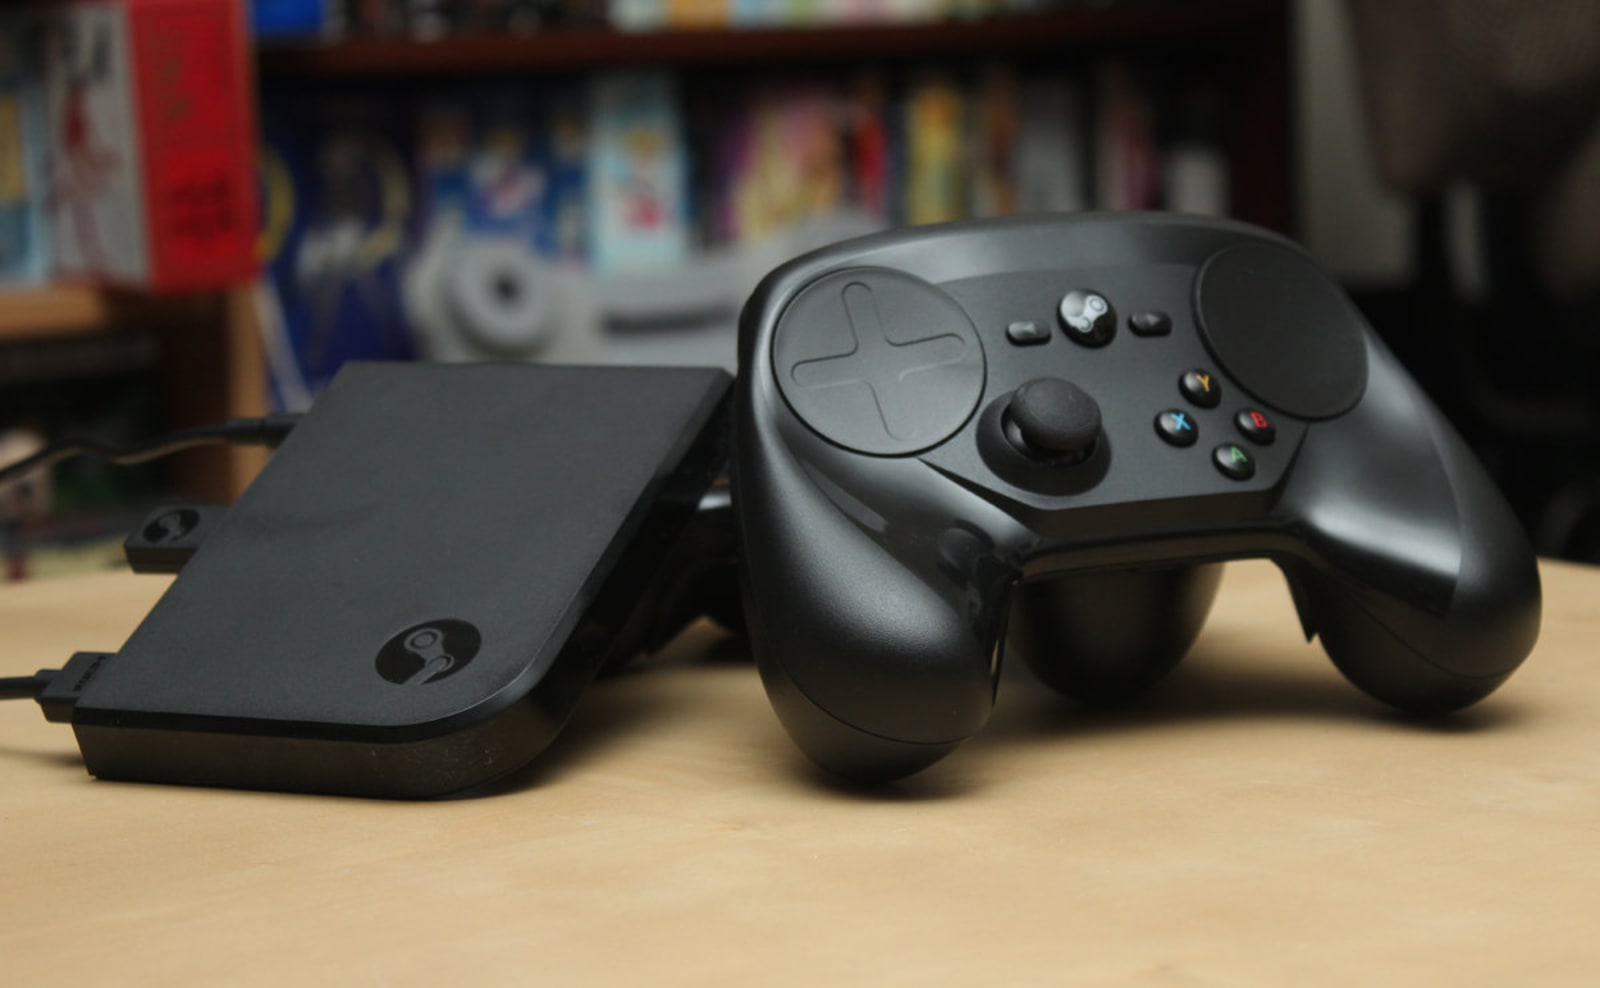 Steam Link game streaming box is almost gone for good